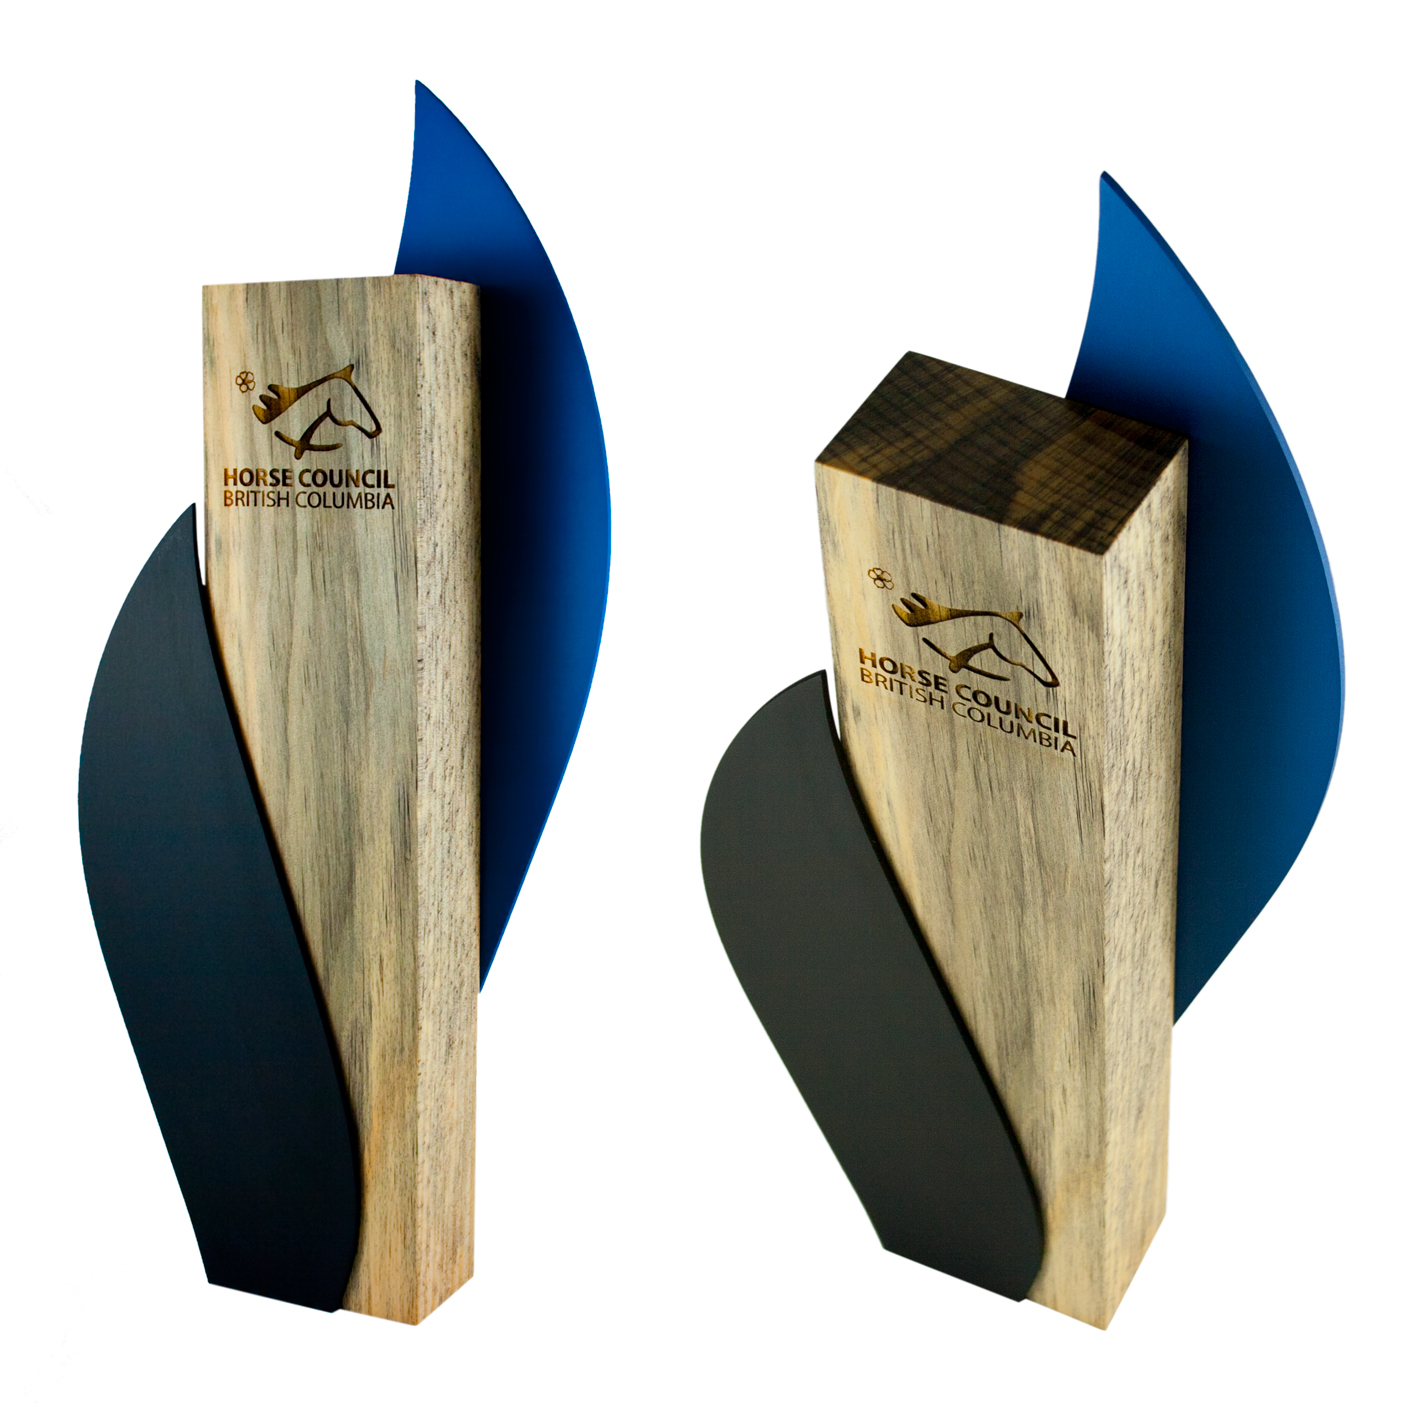 horse council of british columbia - custom eco-friendly award design